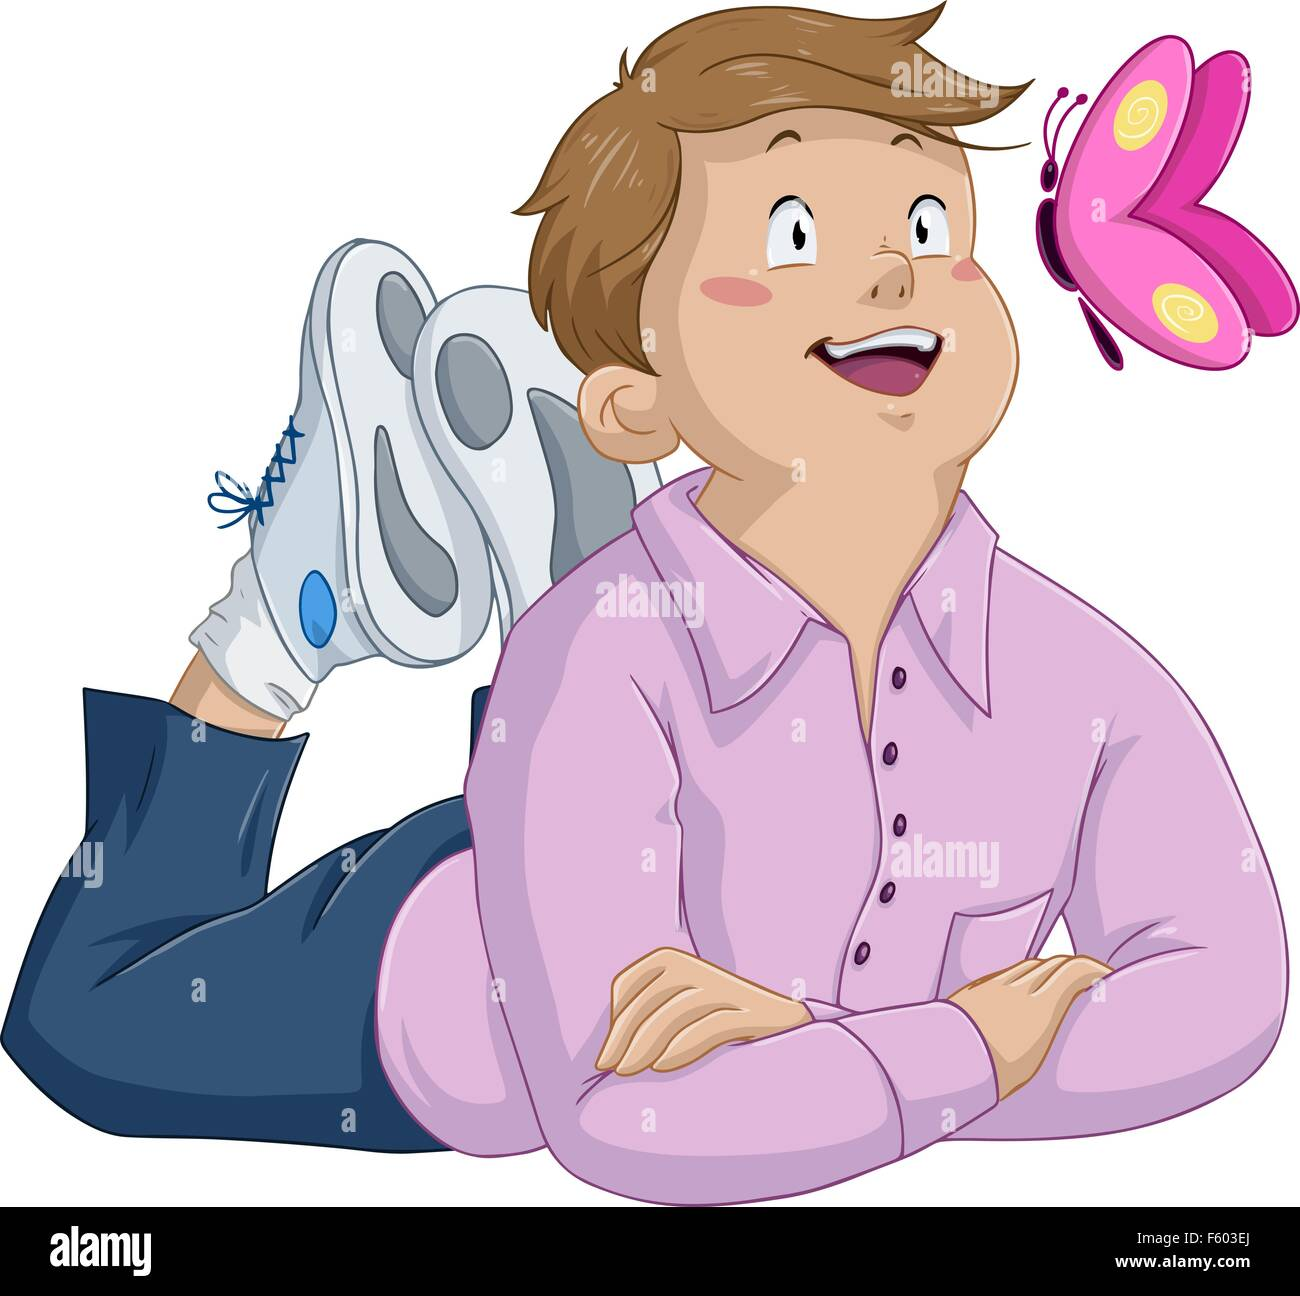 Vector illustration of an innocent boy laying and looking at butterfly. - Stock Image